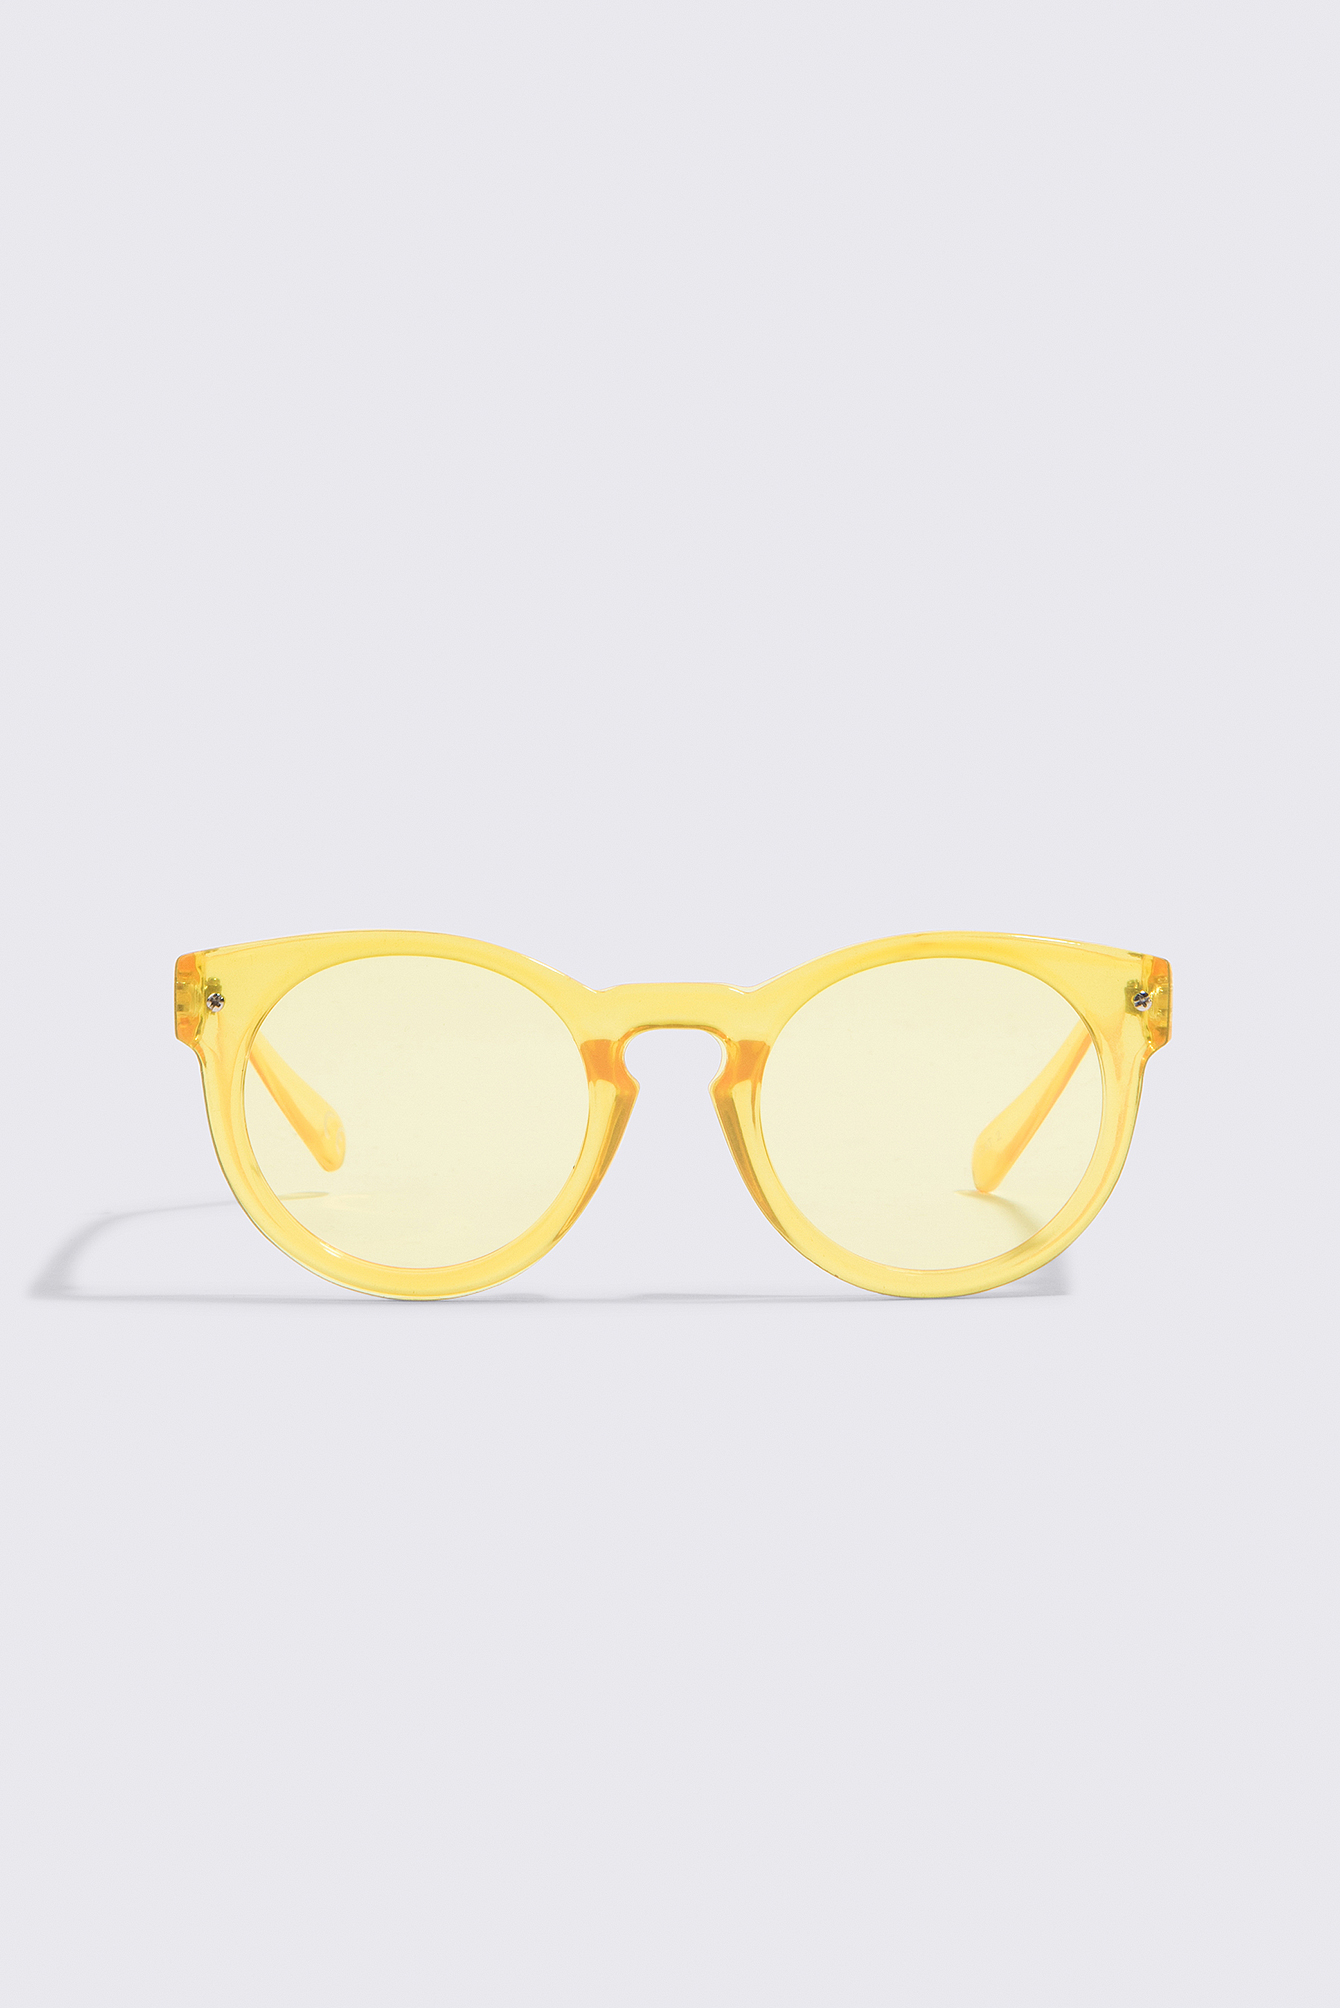 NA-KD Accessories Round Colored Sunglasses - Yellow lP53yx